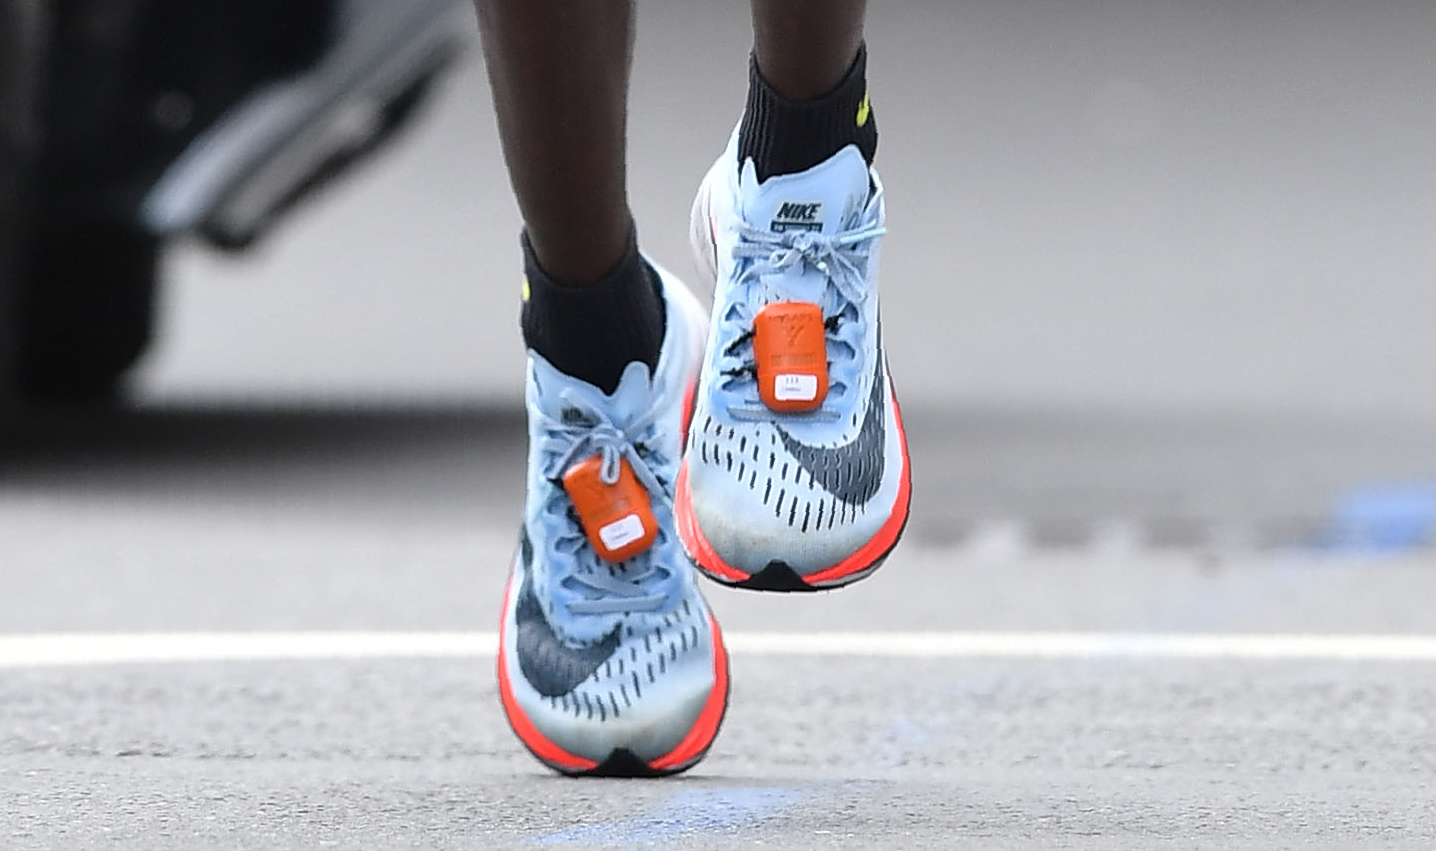 low priced 79ac7 71126 Nike s New Shoe Shoots for the Moon, But Where Does It Land